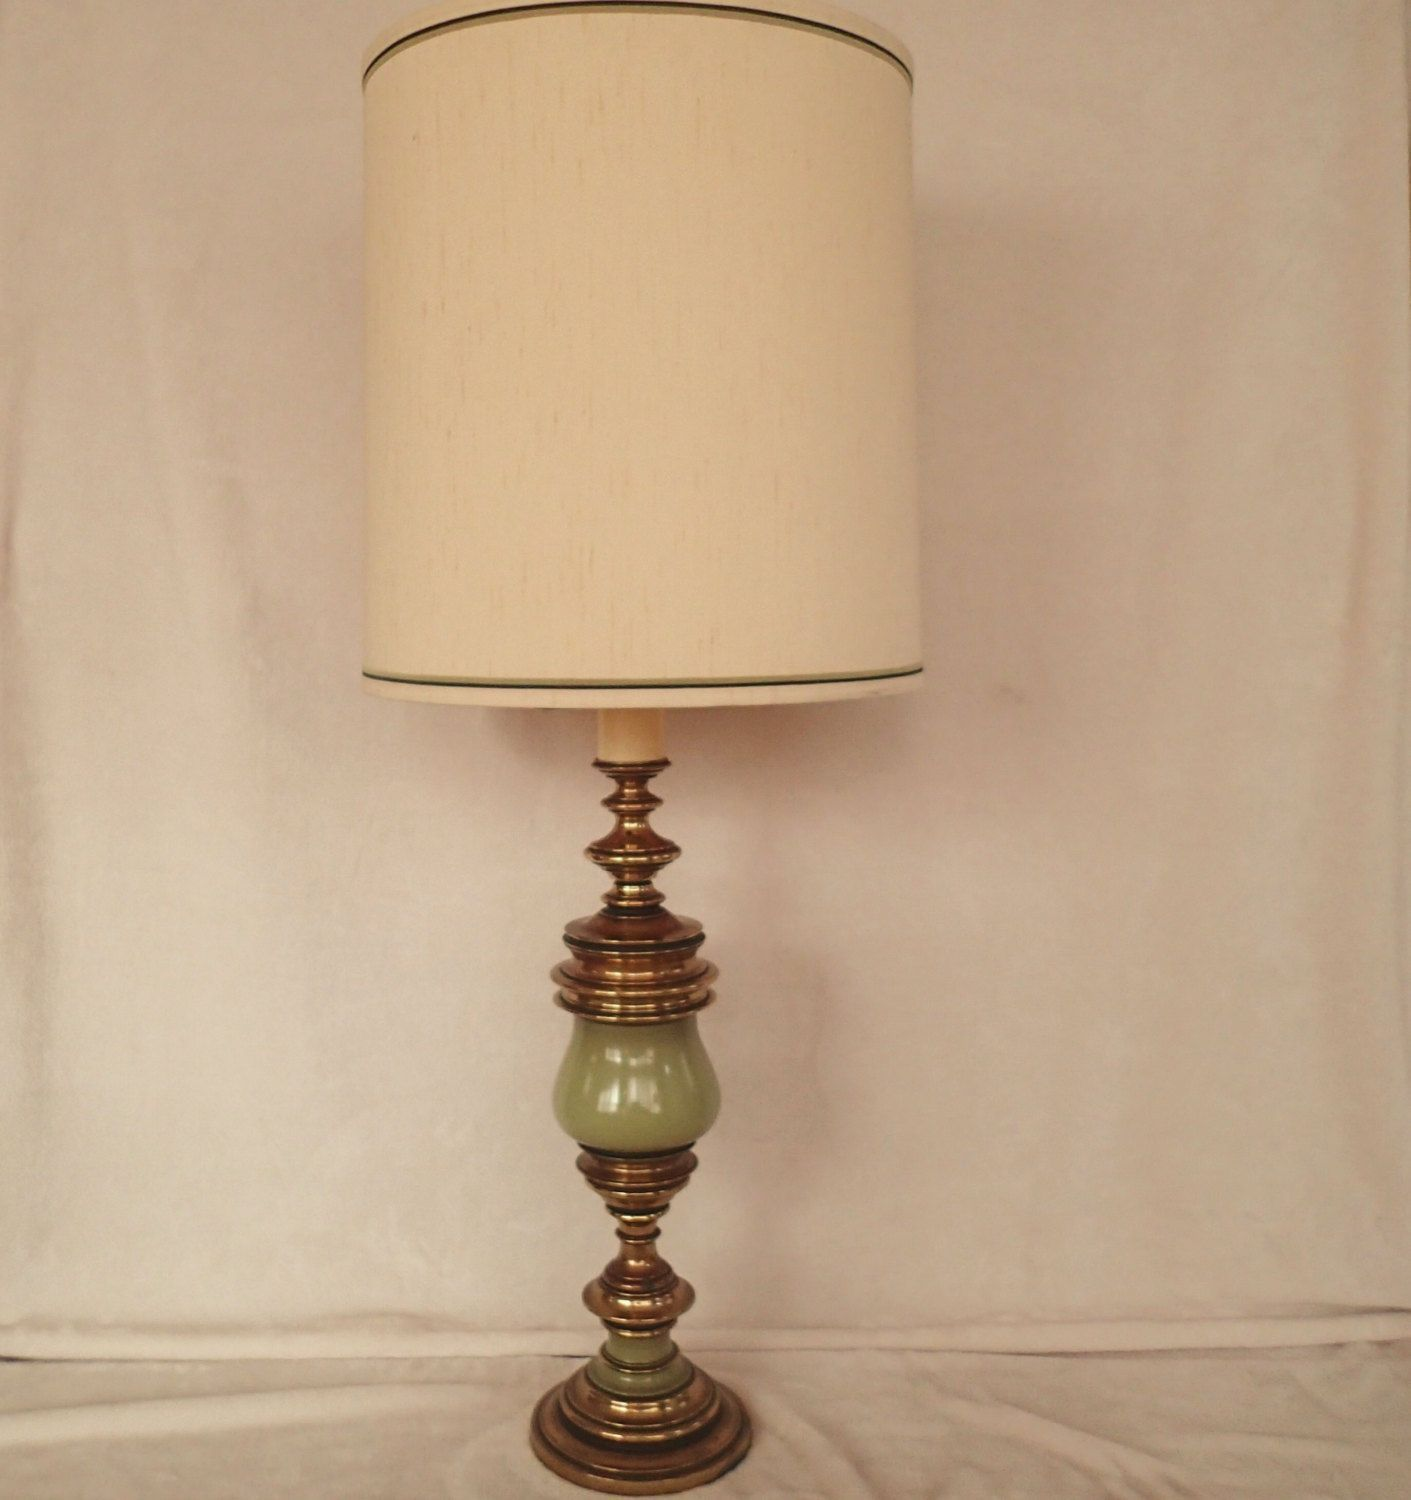 Fantastic Ideas Can Change Your Life Table Lamp Shades